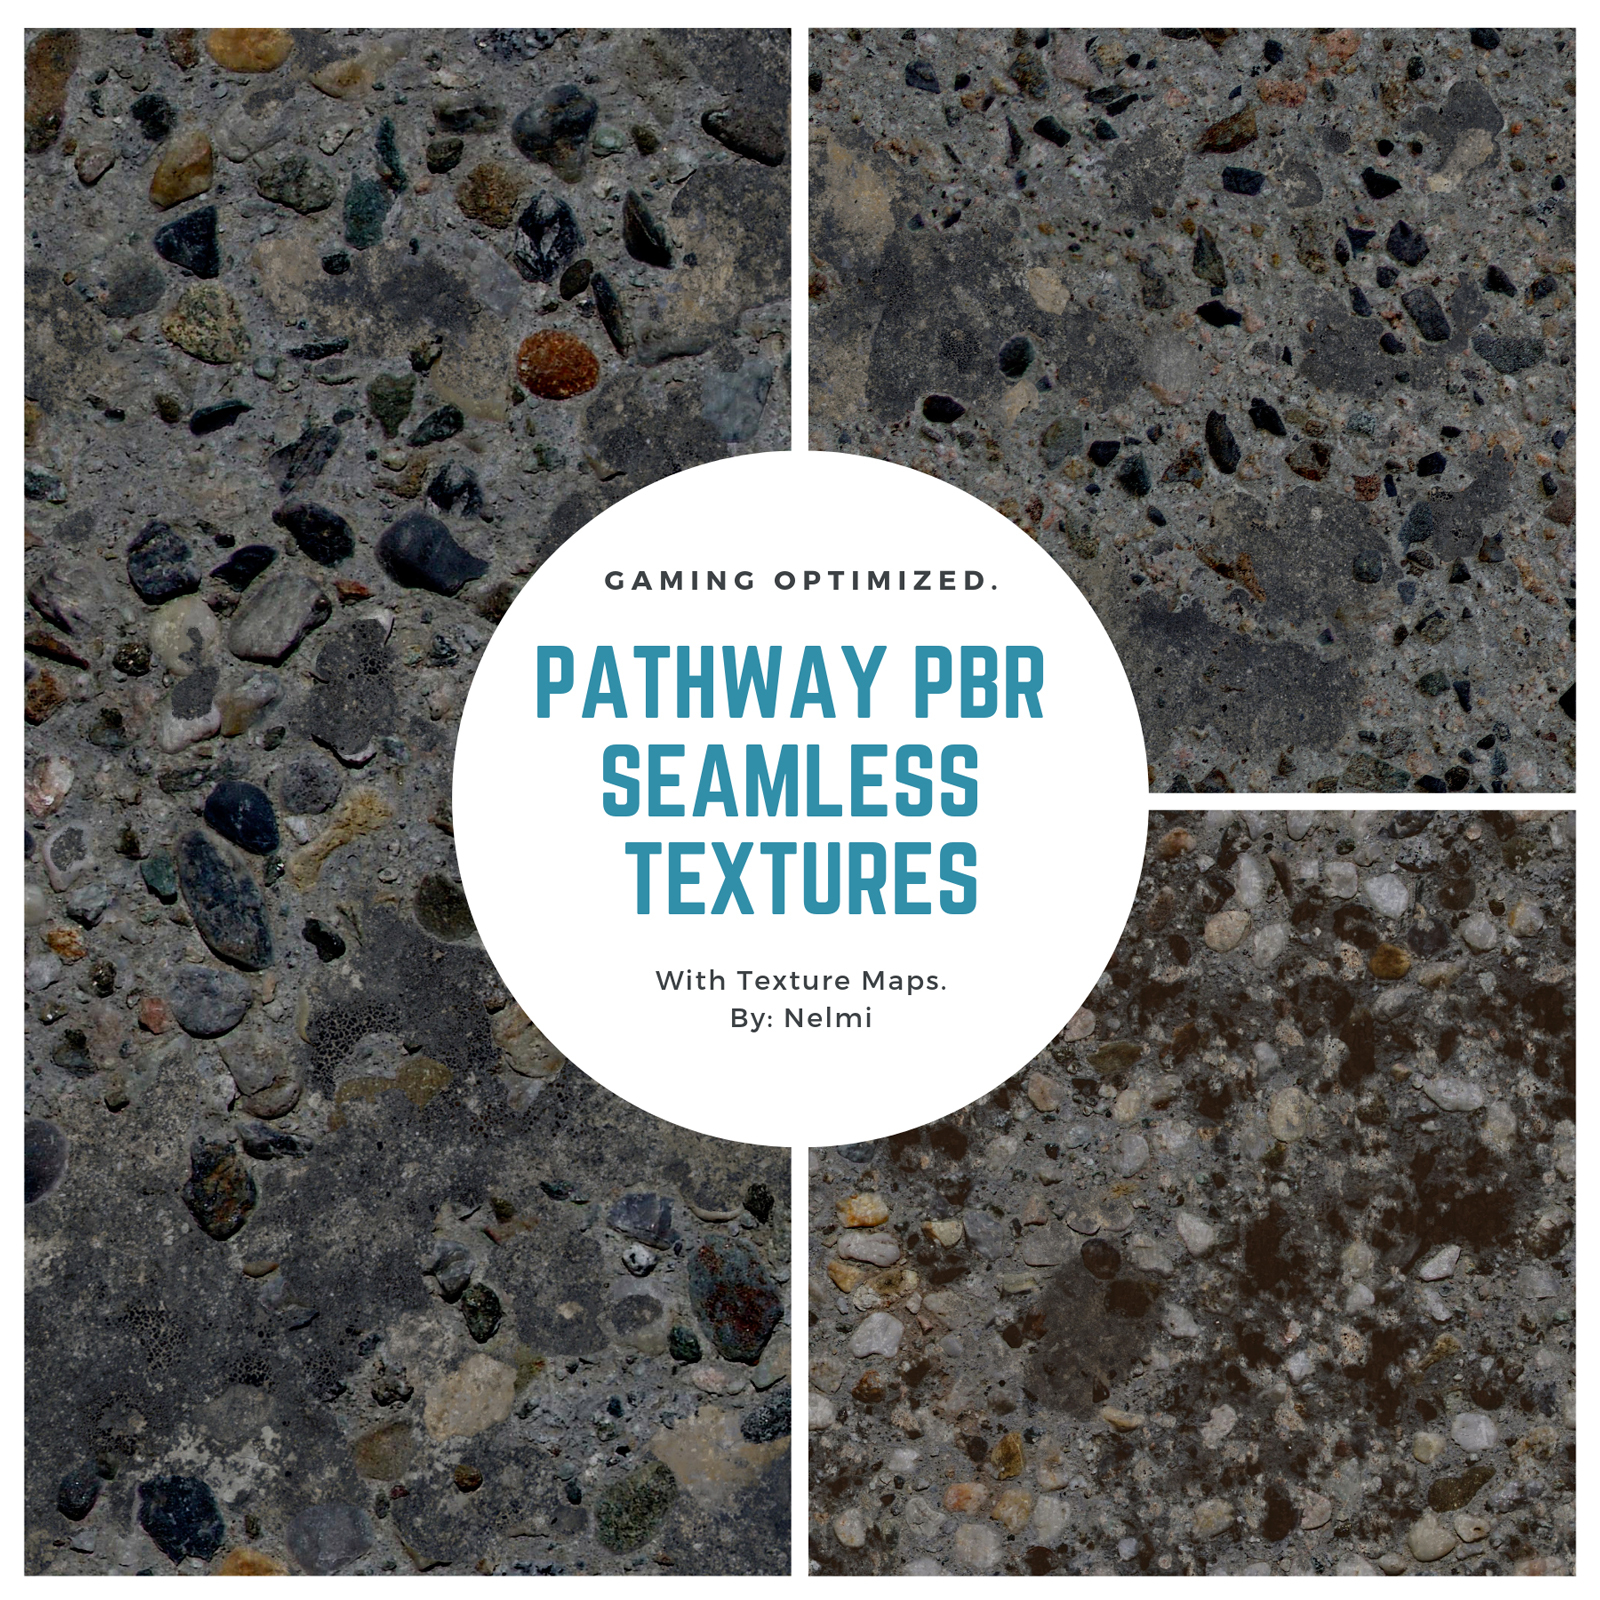 10 Pathway PBR Seamless Textures - MR by nelmi